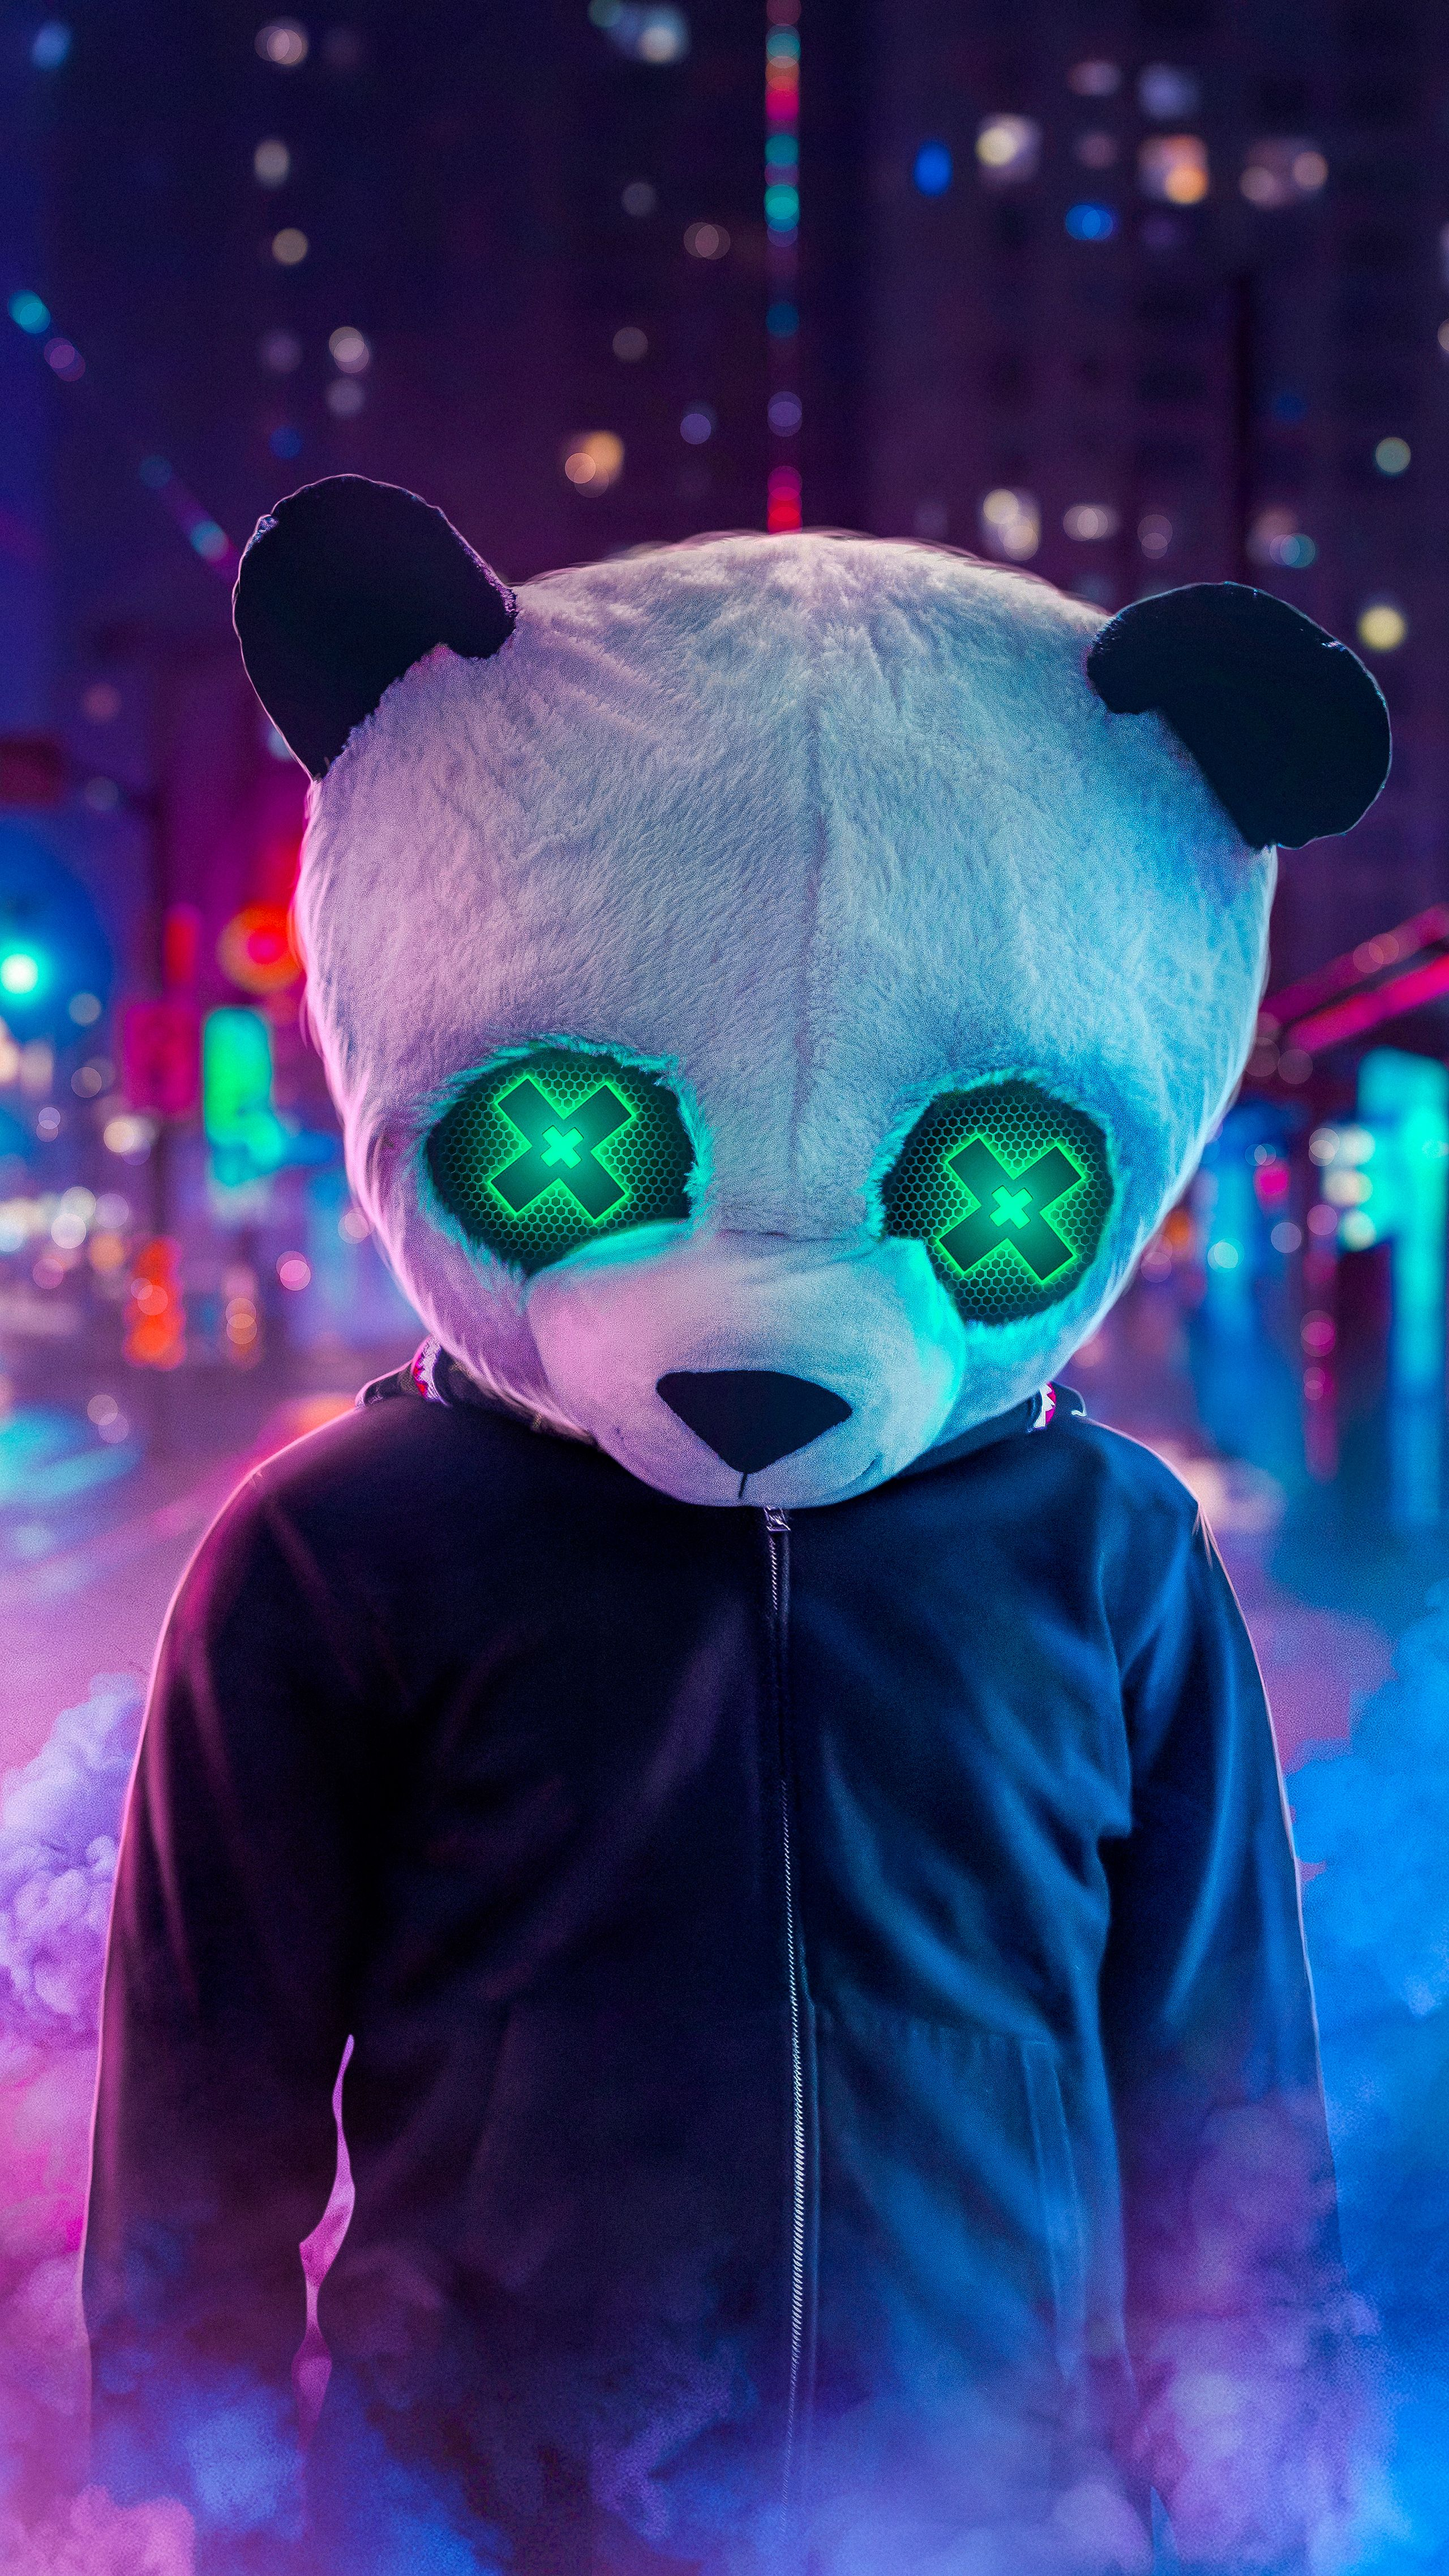 Phone Panda Style Android Ios Wallpaper Iphone Wallpaper Glitter Hypebeast Wallpaper Panda Art